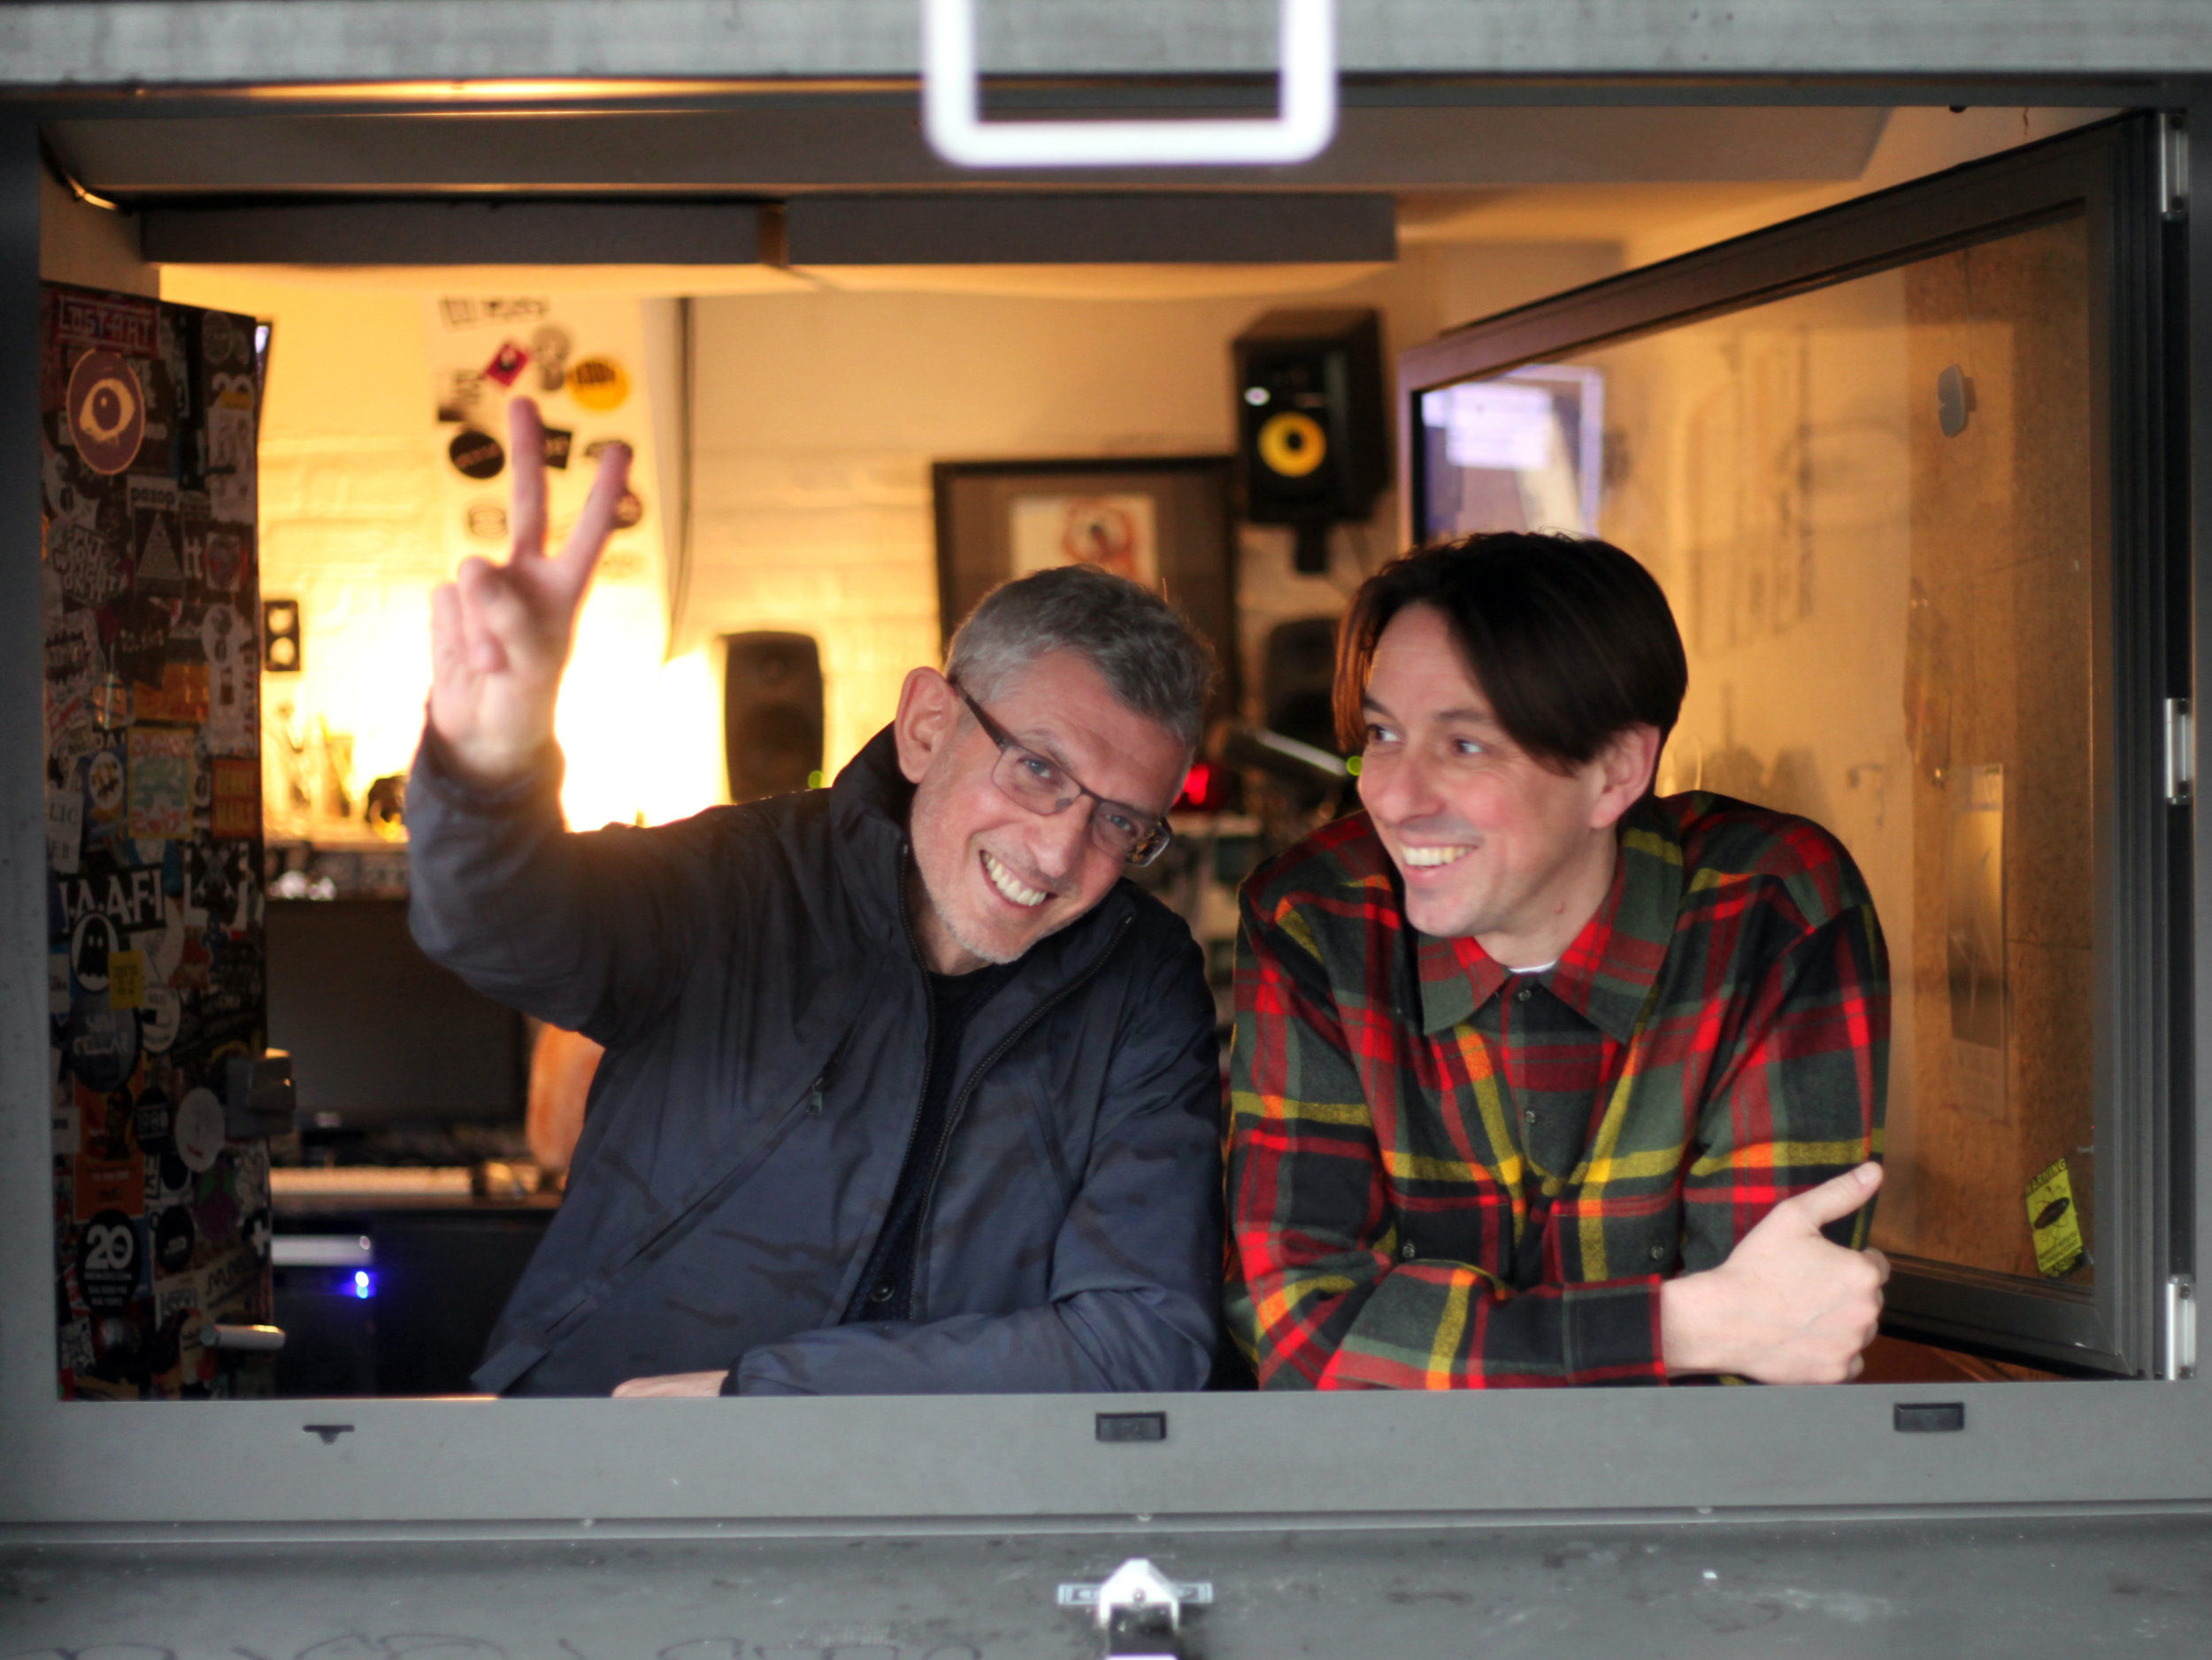 NTS PHOTOS_raw-images_ross allen w tim lawrence thursday 12th january edit.jpg